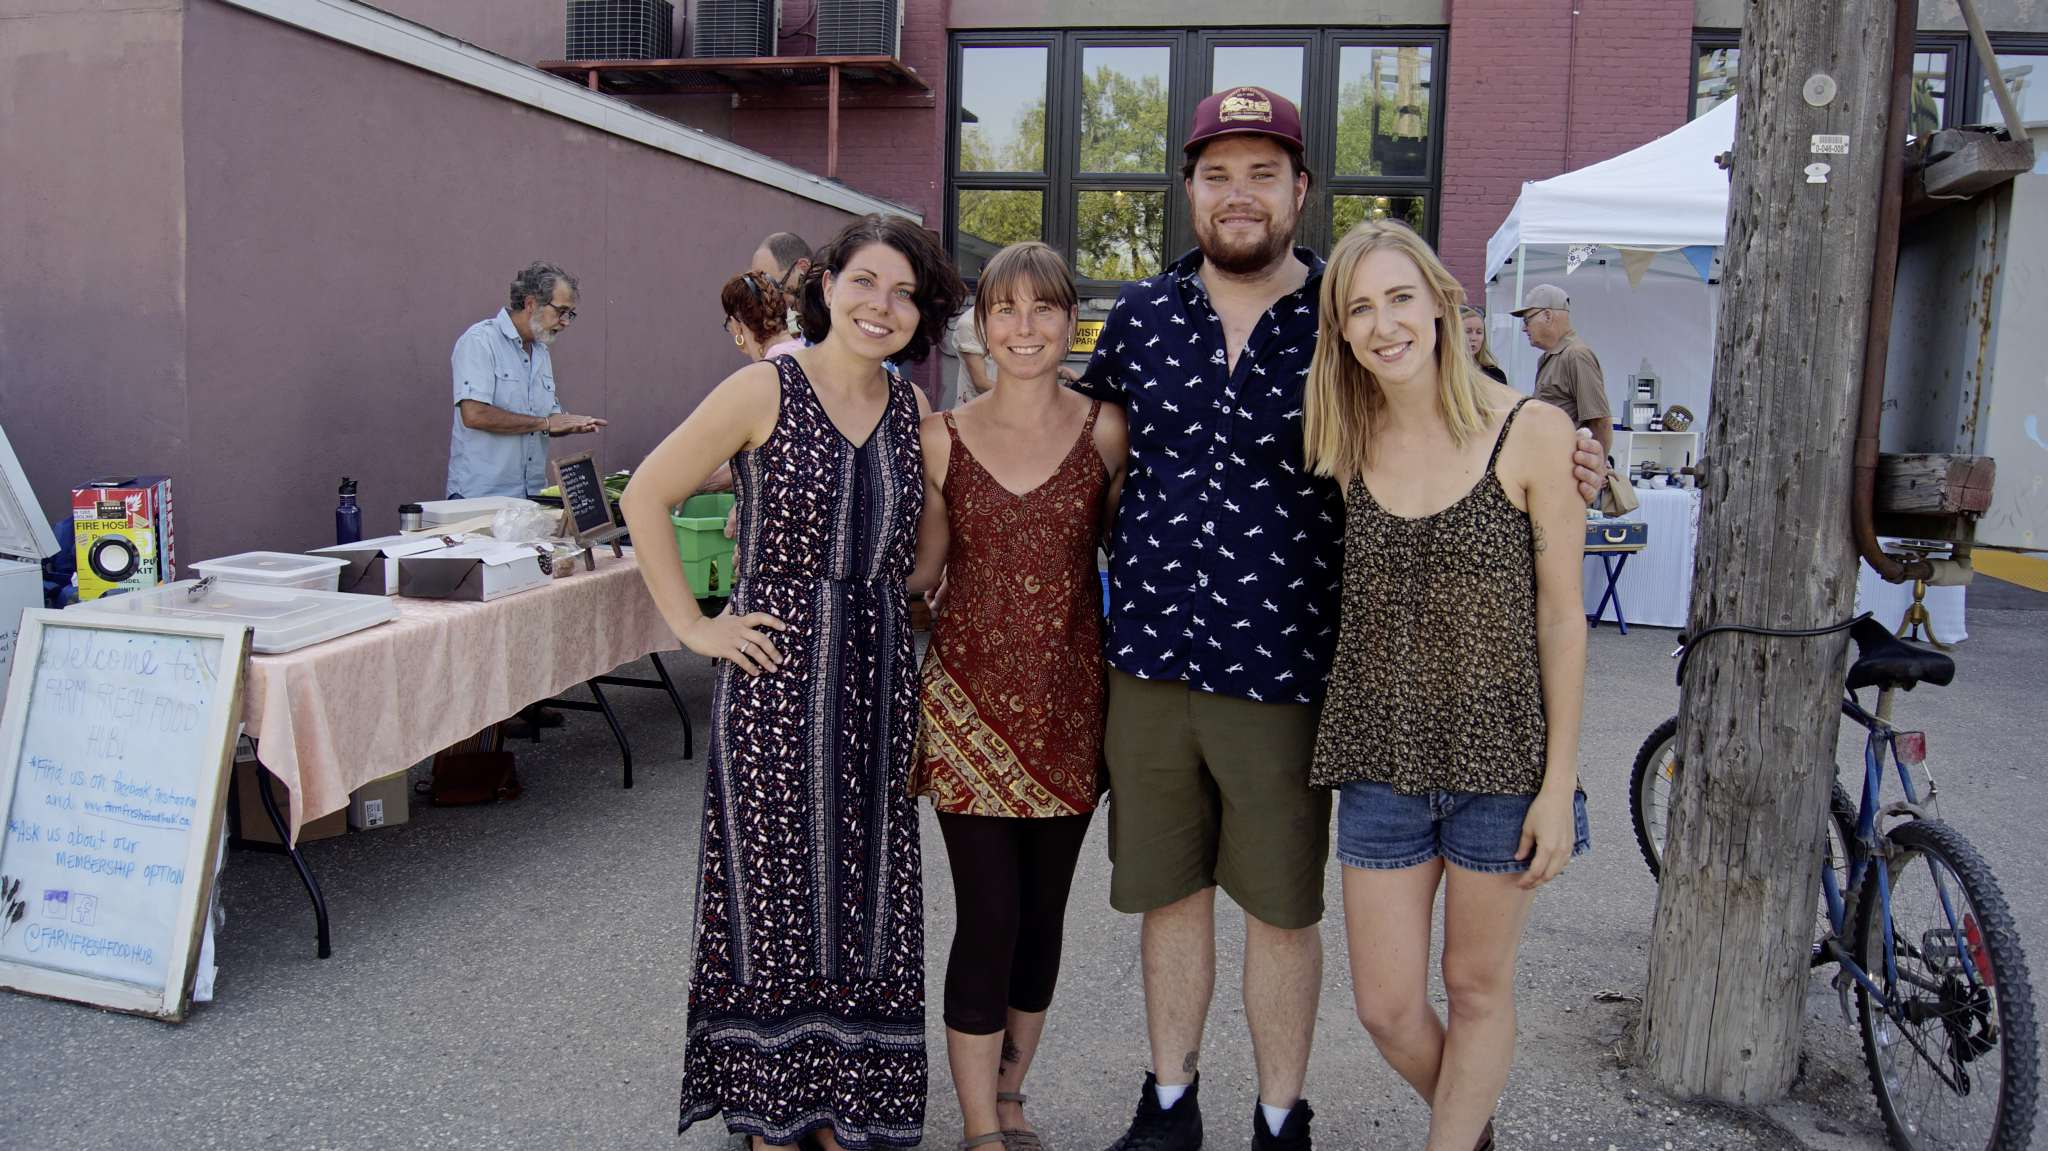 South Osborne is home to a new farmers' market on Wednesday evenings from 4 to 8 p.m. Organizers of the South Osborne Farmers' Market from left: Leanne Dunne, Kelly Janz, Reuben Van Gaalen, and Katie Daman.